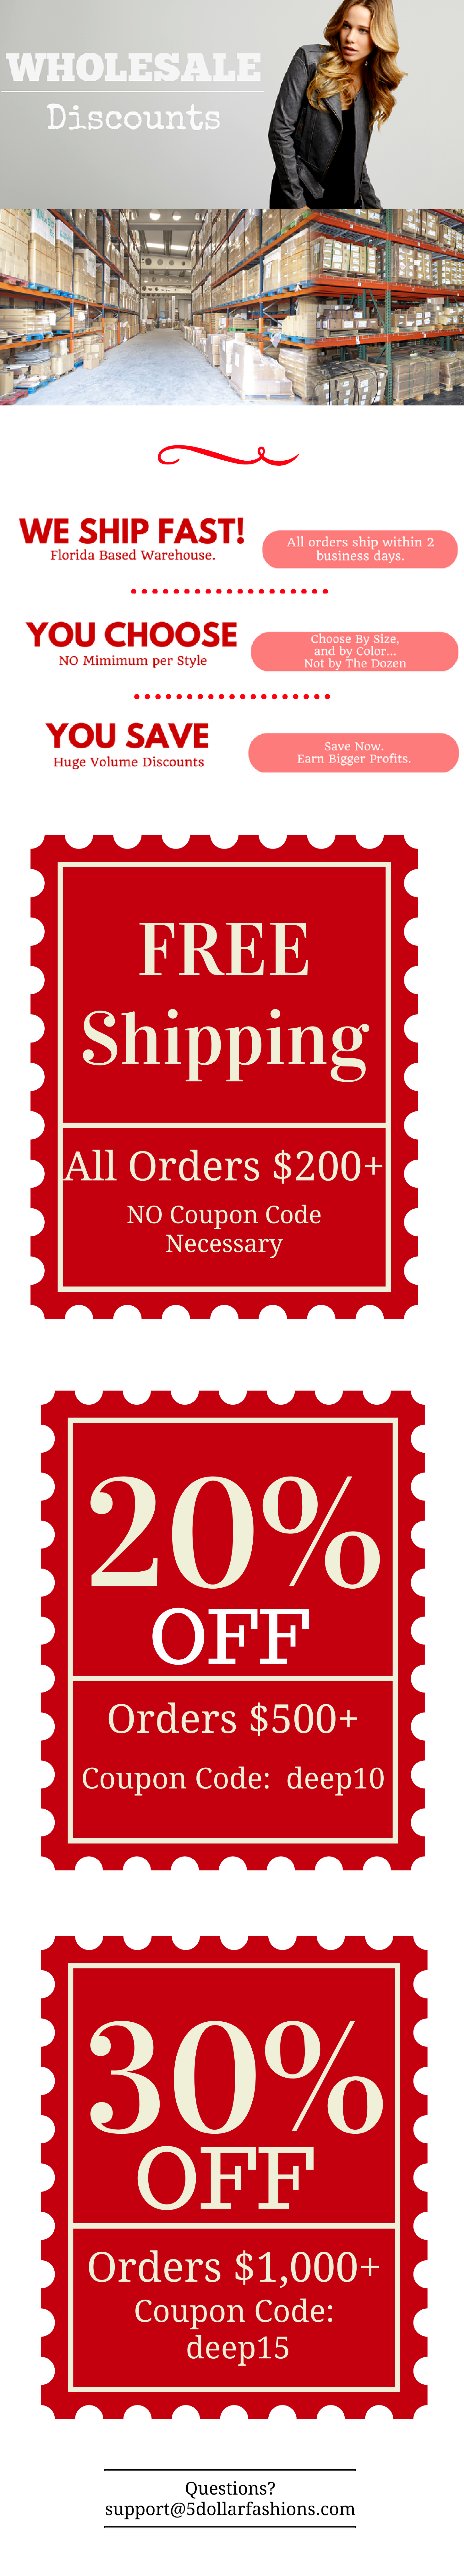 wholesale-page-2-900x5000.png